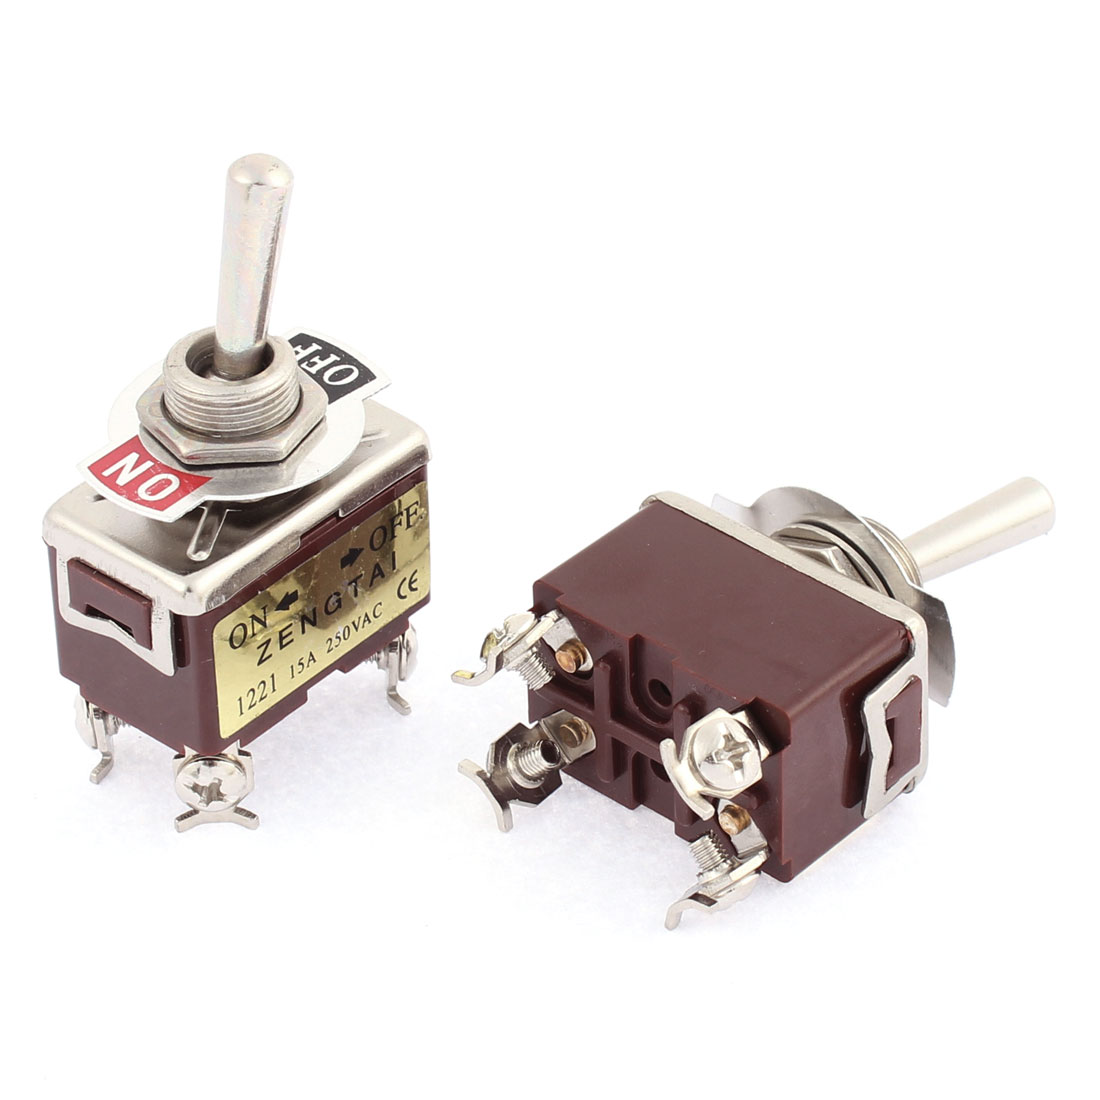 AC 250V 15A DPST ON-OFF 2 Positions 4 Terminals Latching Toggle Switch 2 Pcs